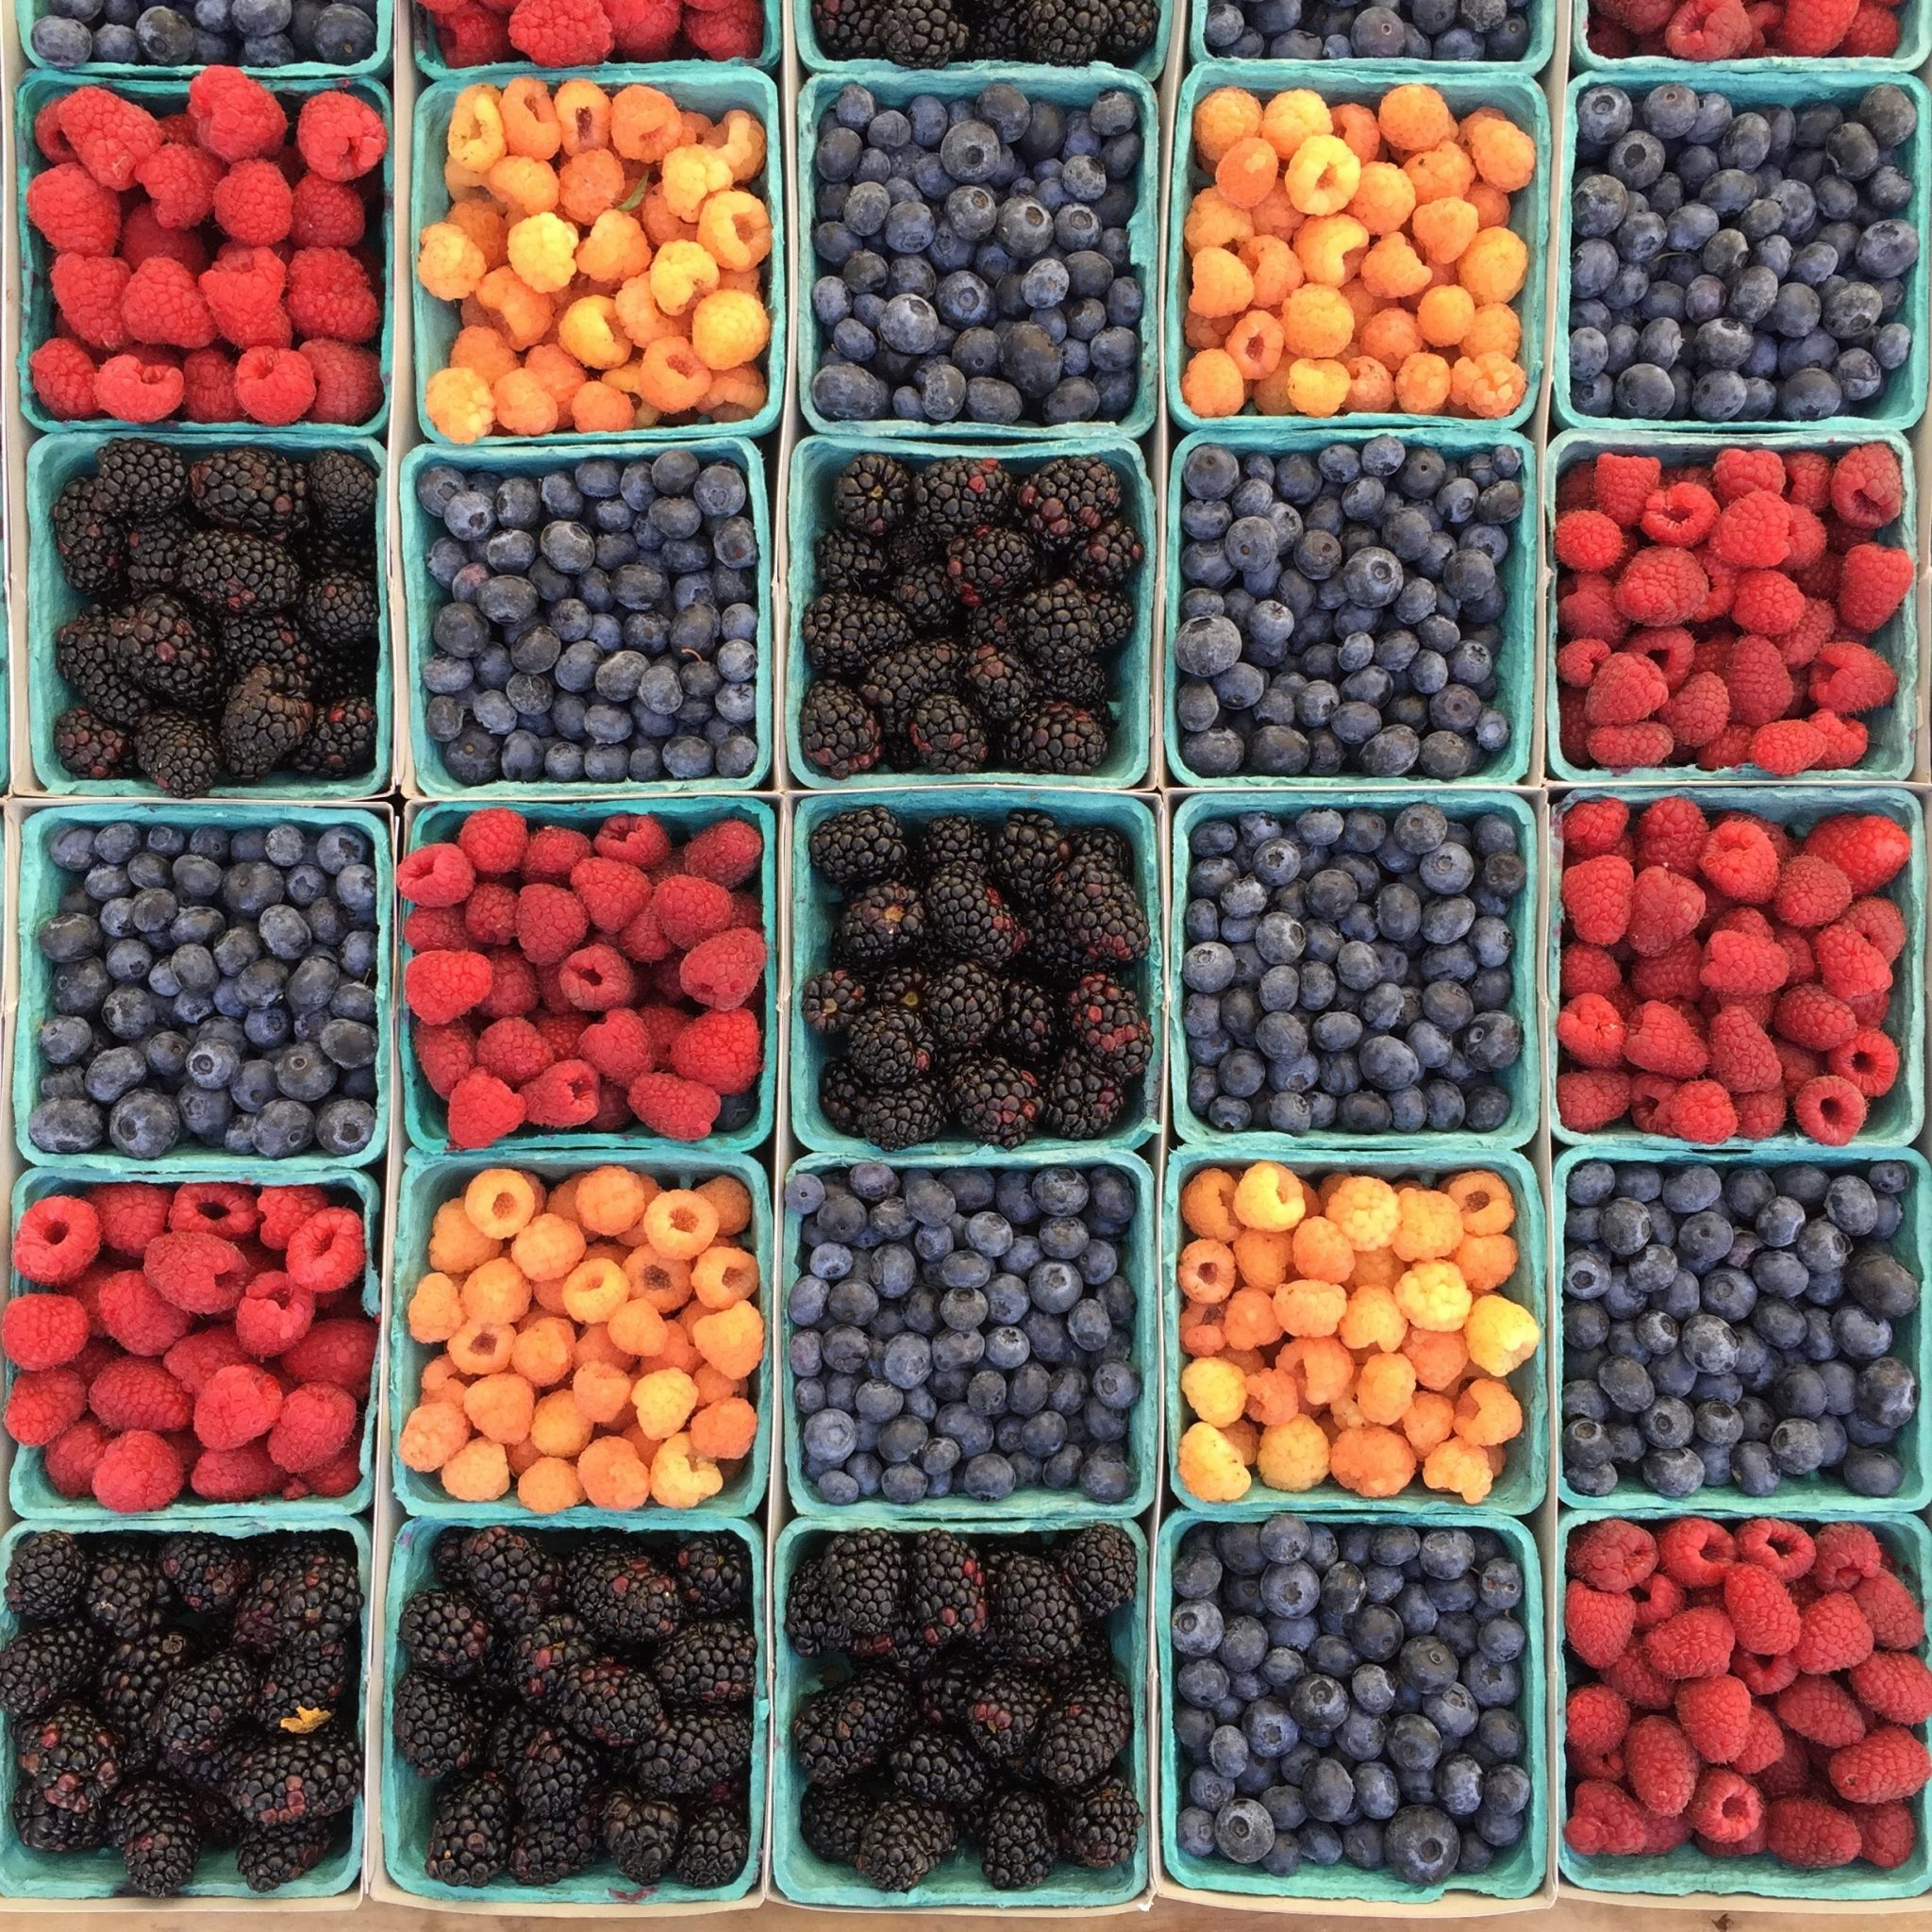 Different colored berries in pint boxes, from overhead